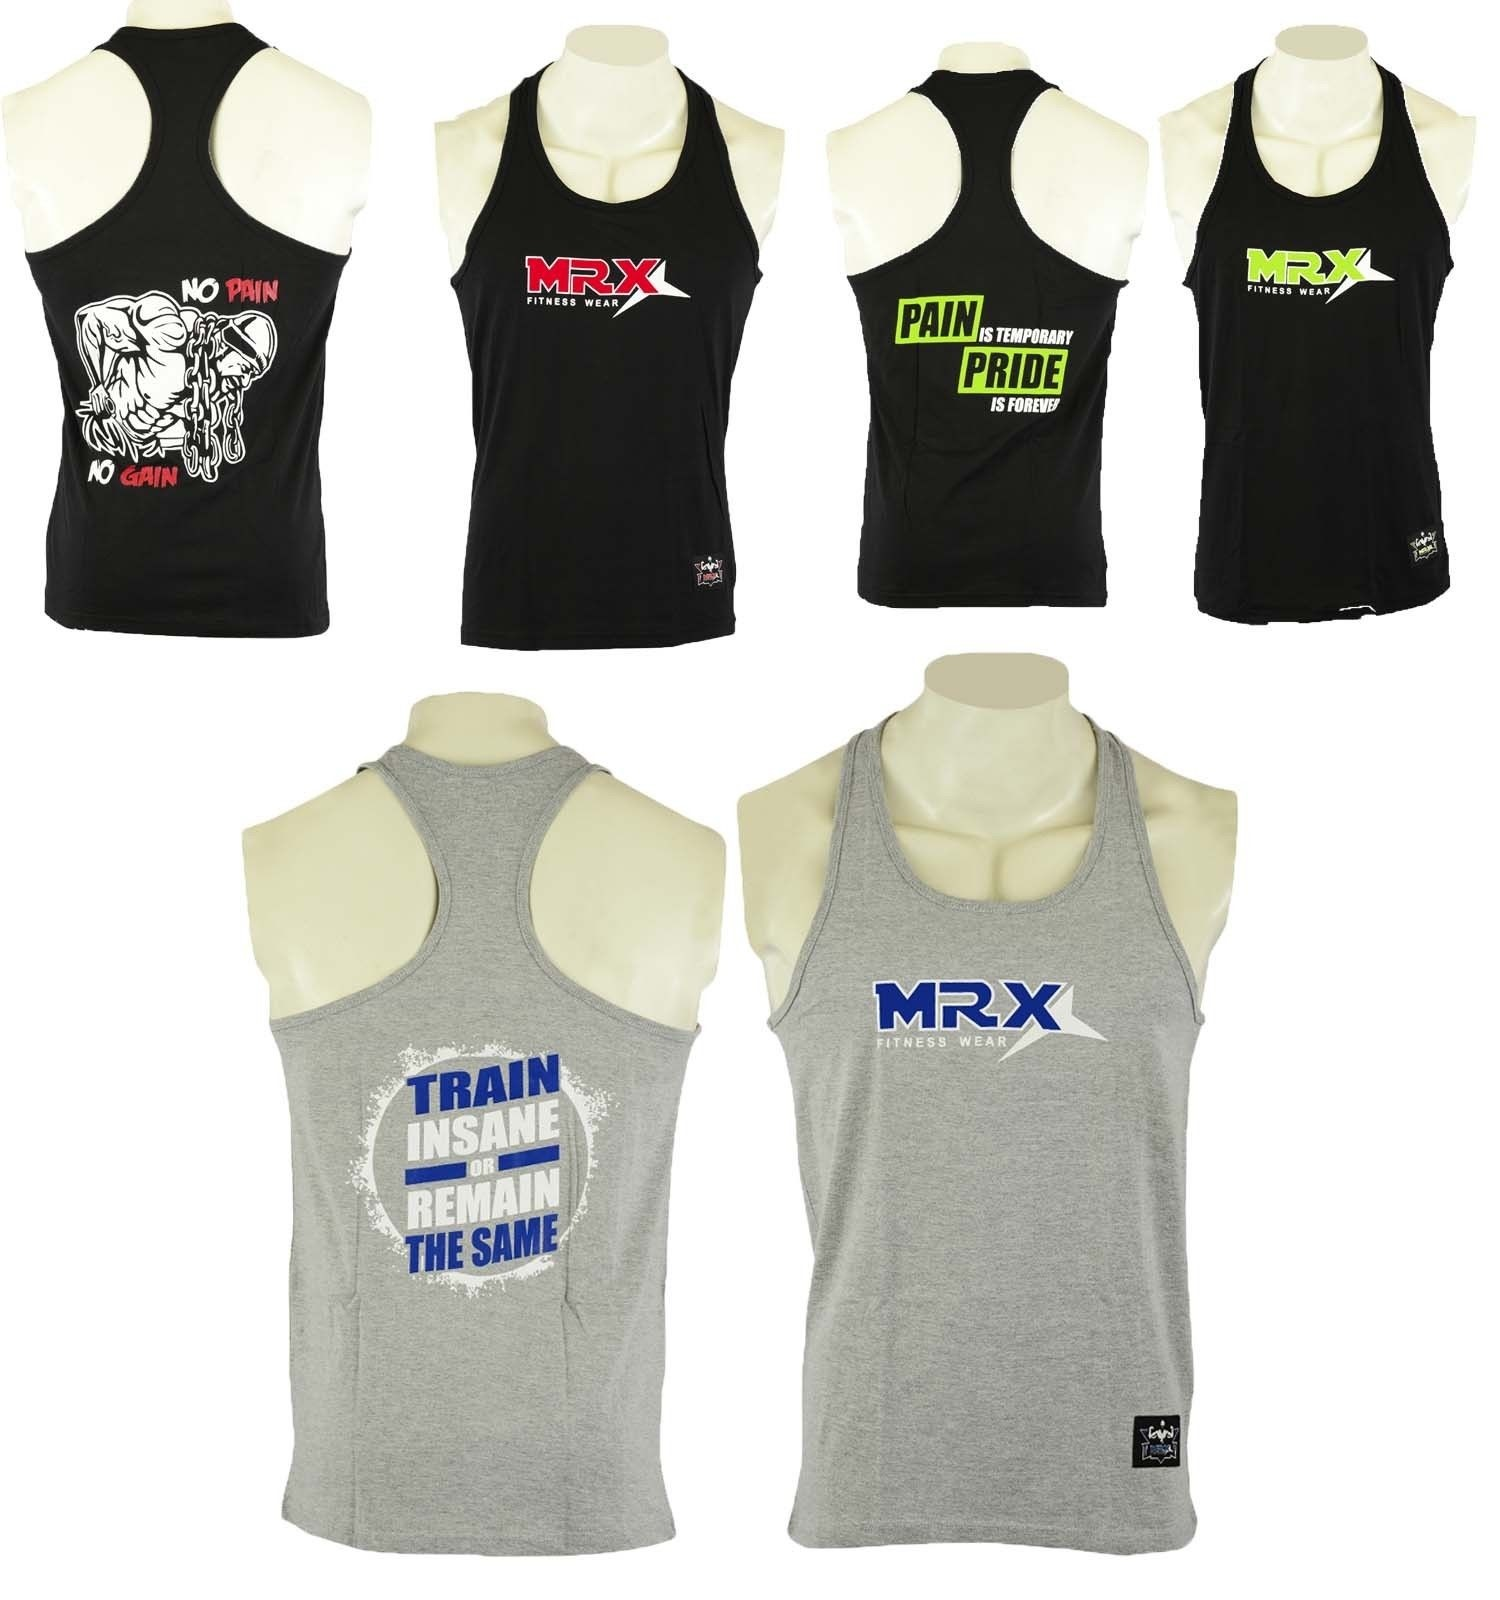 MRX Men's Tank Tops Sports Bodybuilding Workout Fitness Gym Men Wear